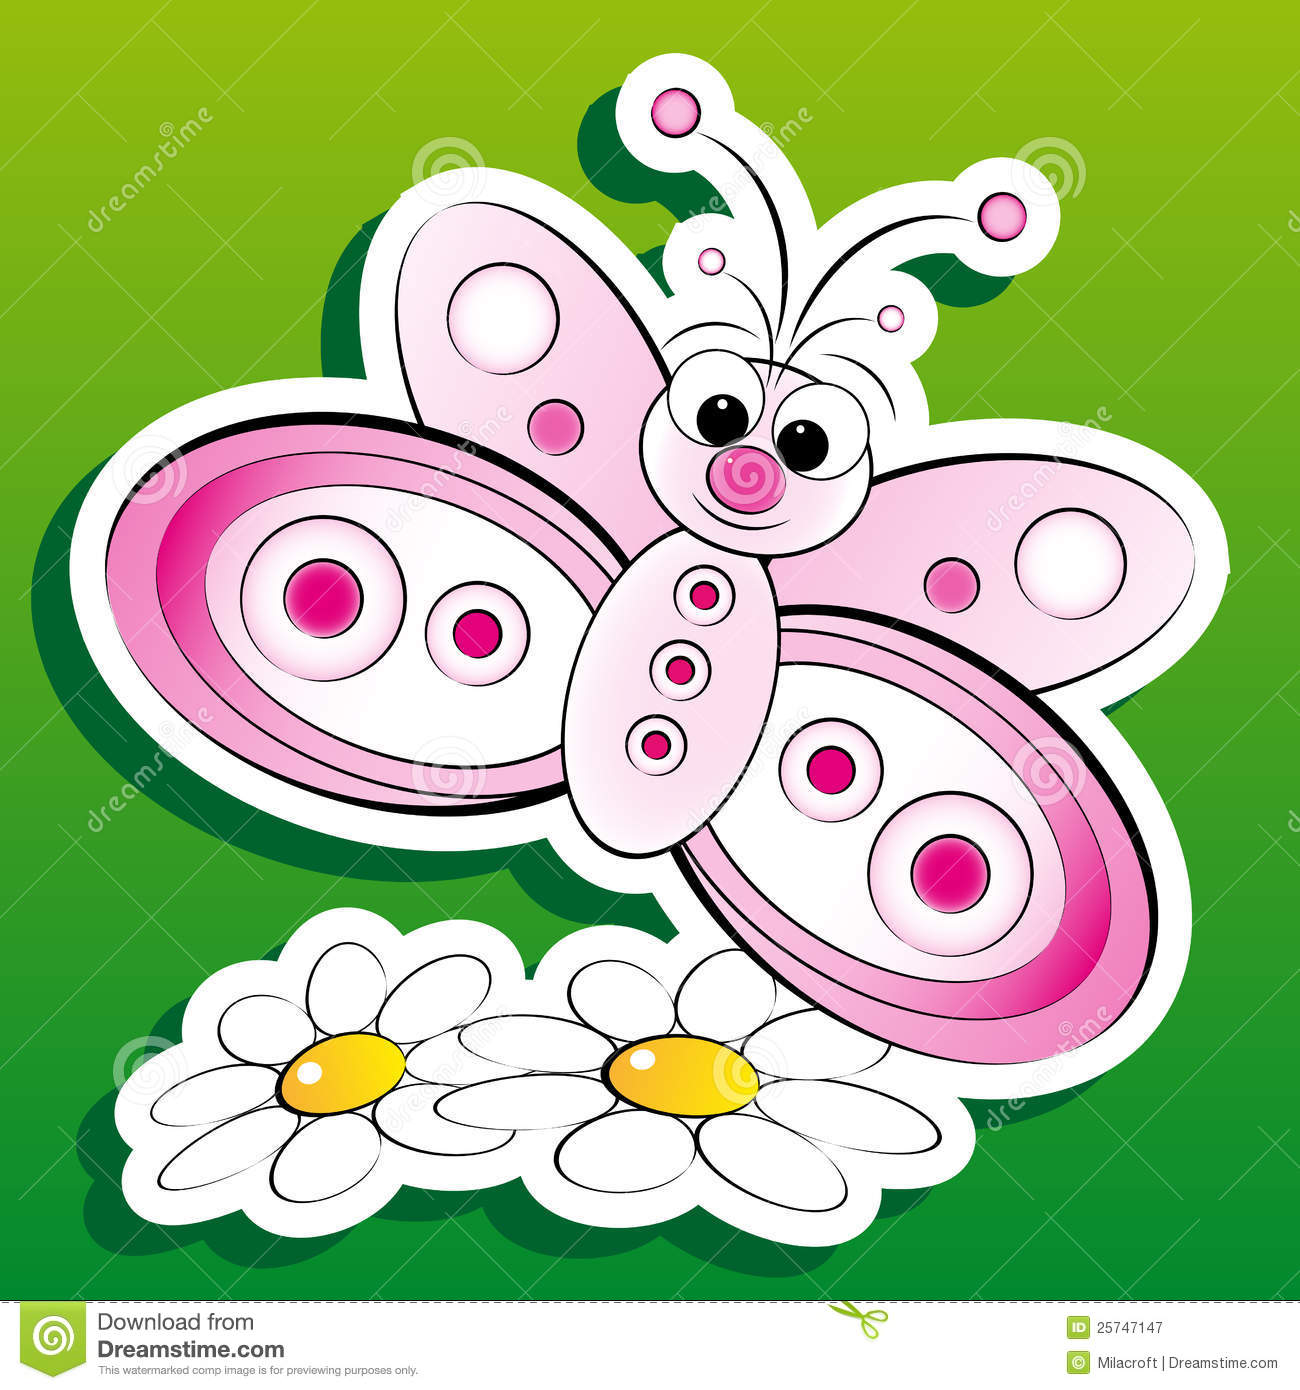 Butterfly and flowers - Kid Illustration